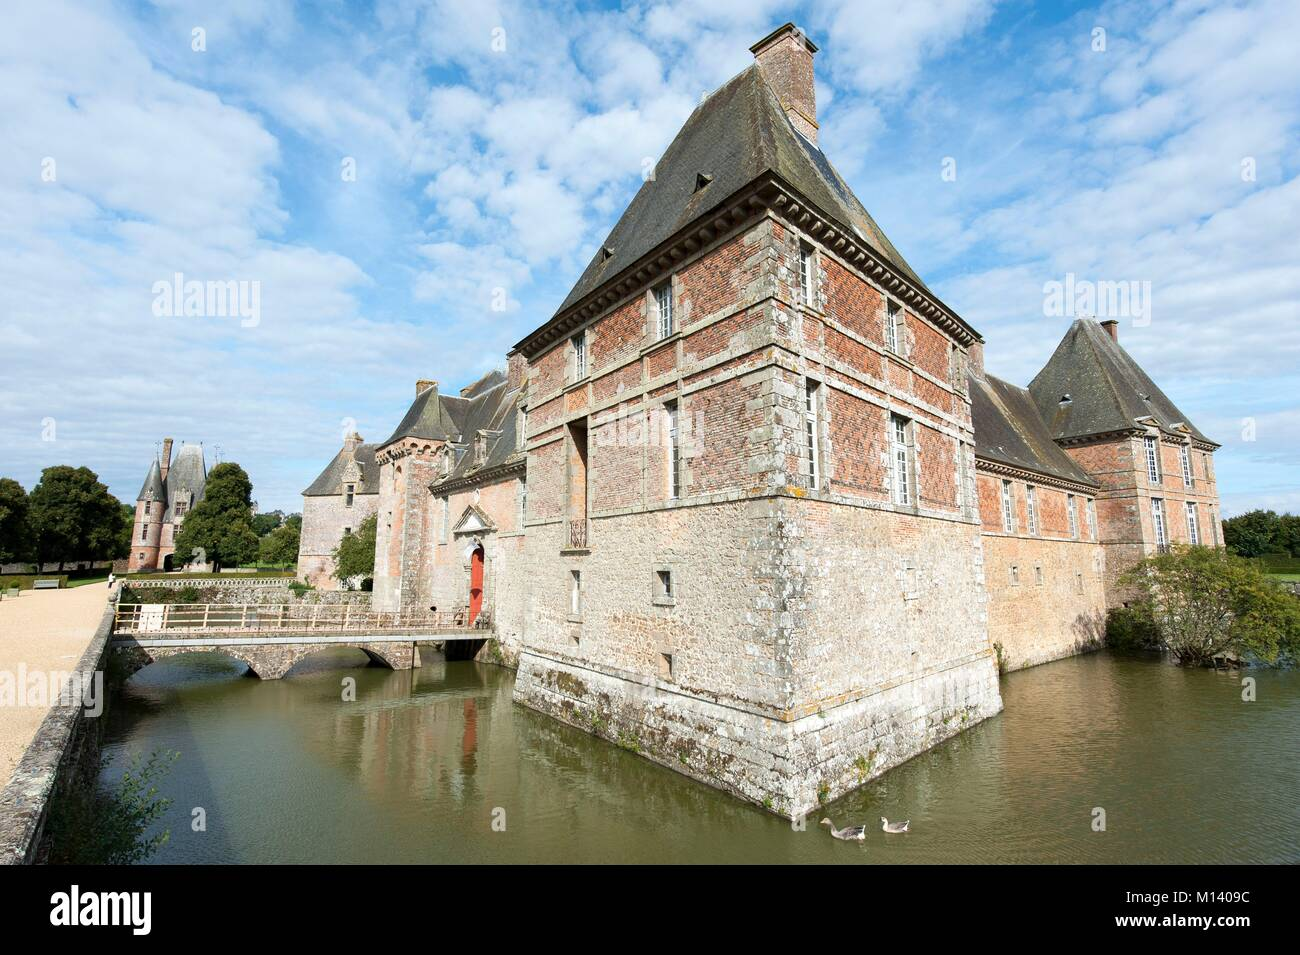 France, Orne, Carrouges, Carrouges castle and the moats Stock Photo